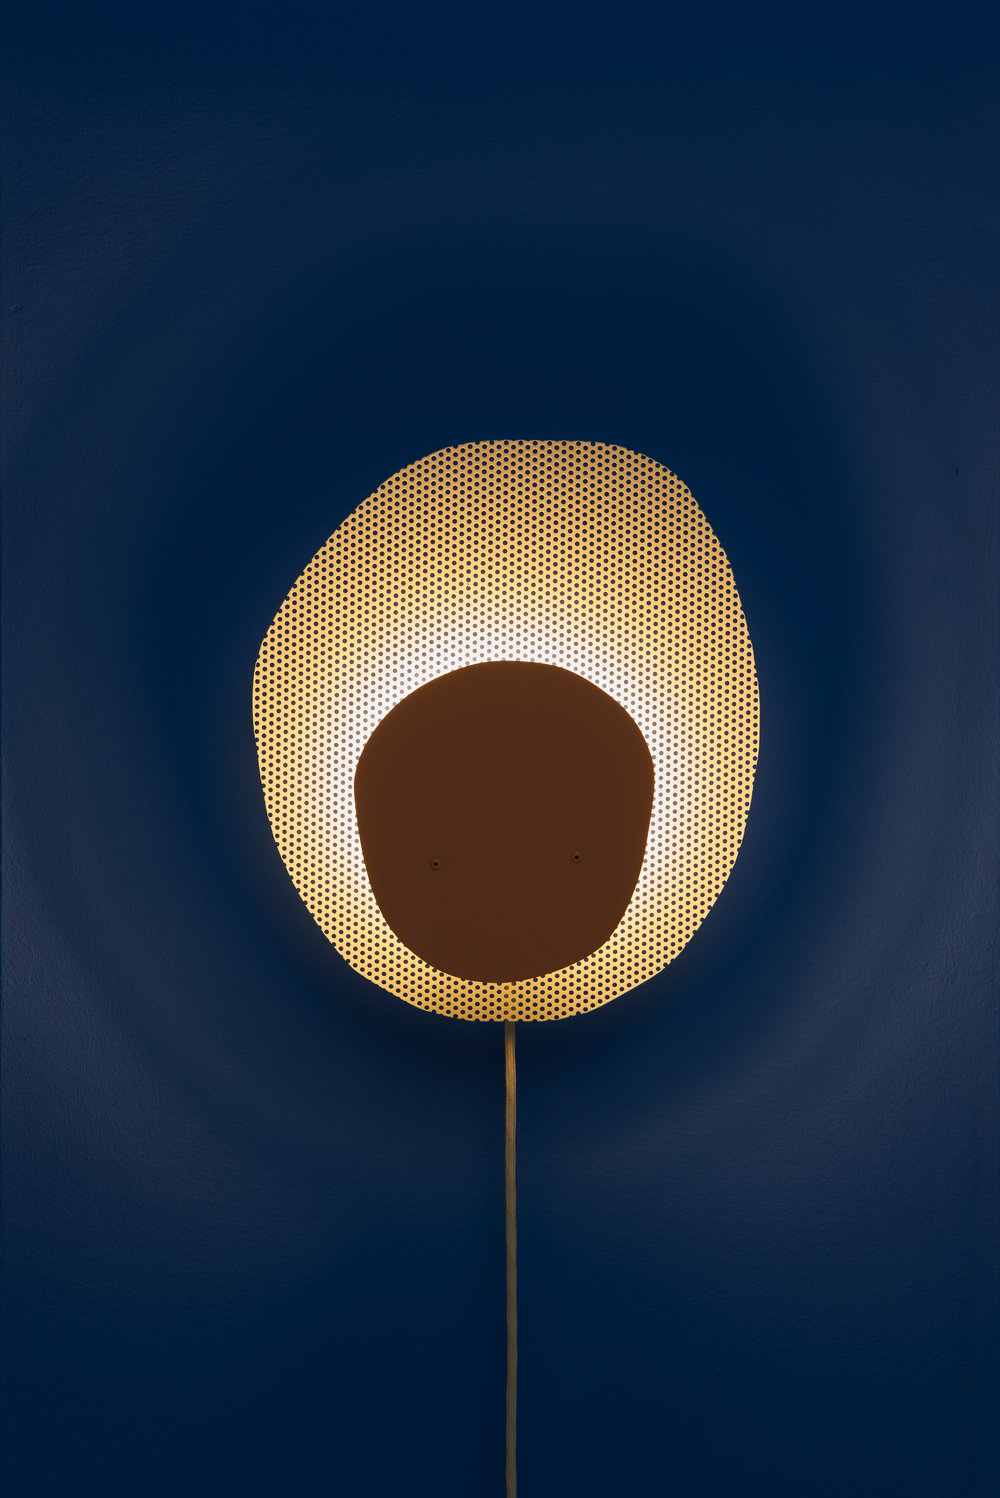 POPPY_Wall_Lamp_Frederik_Kurzweg_Design_Studio_04.jpg